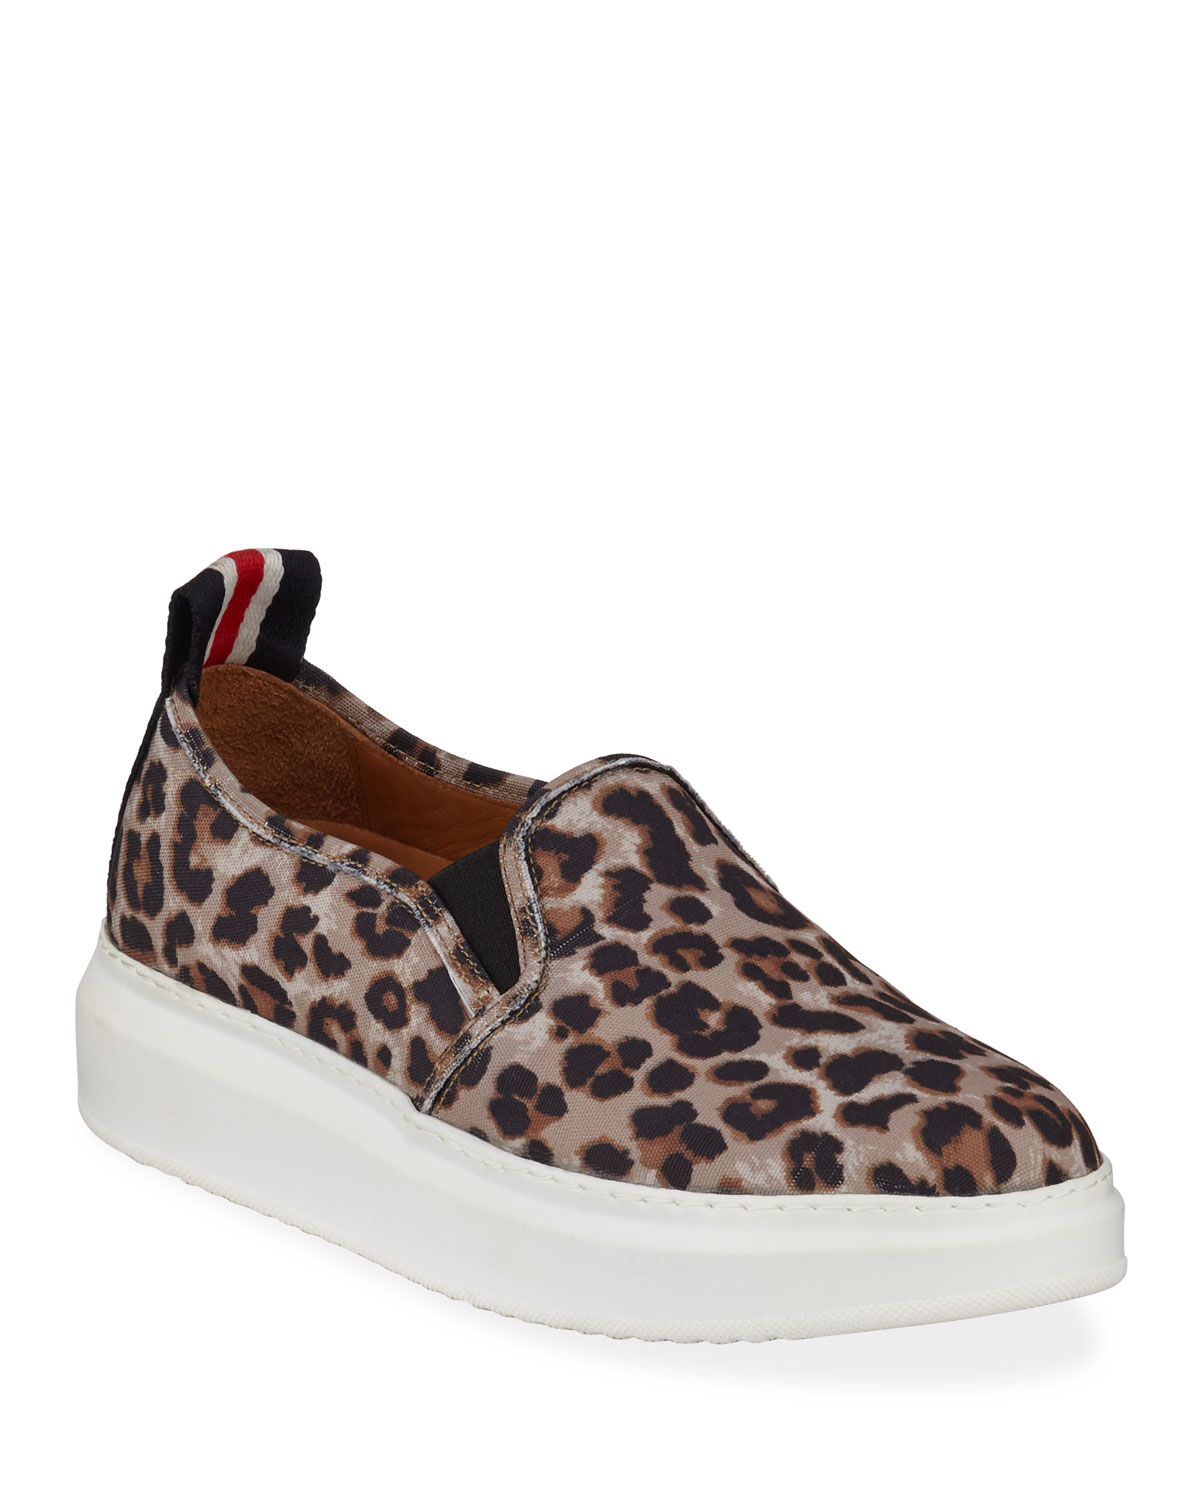 Westley Leopard Slip-On Sneakers